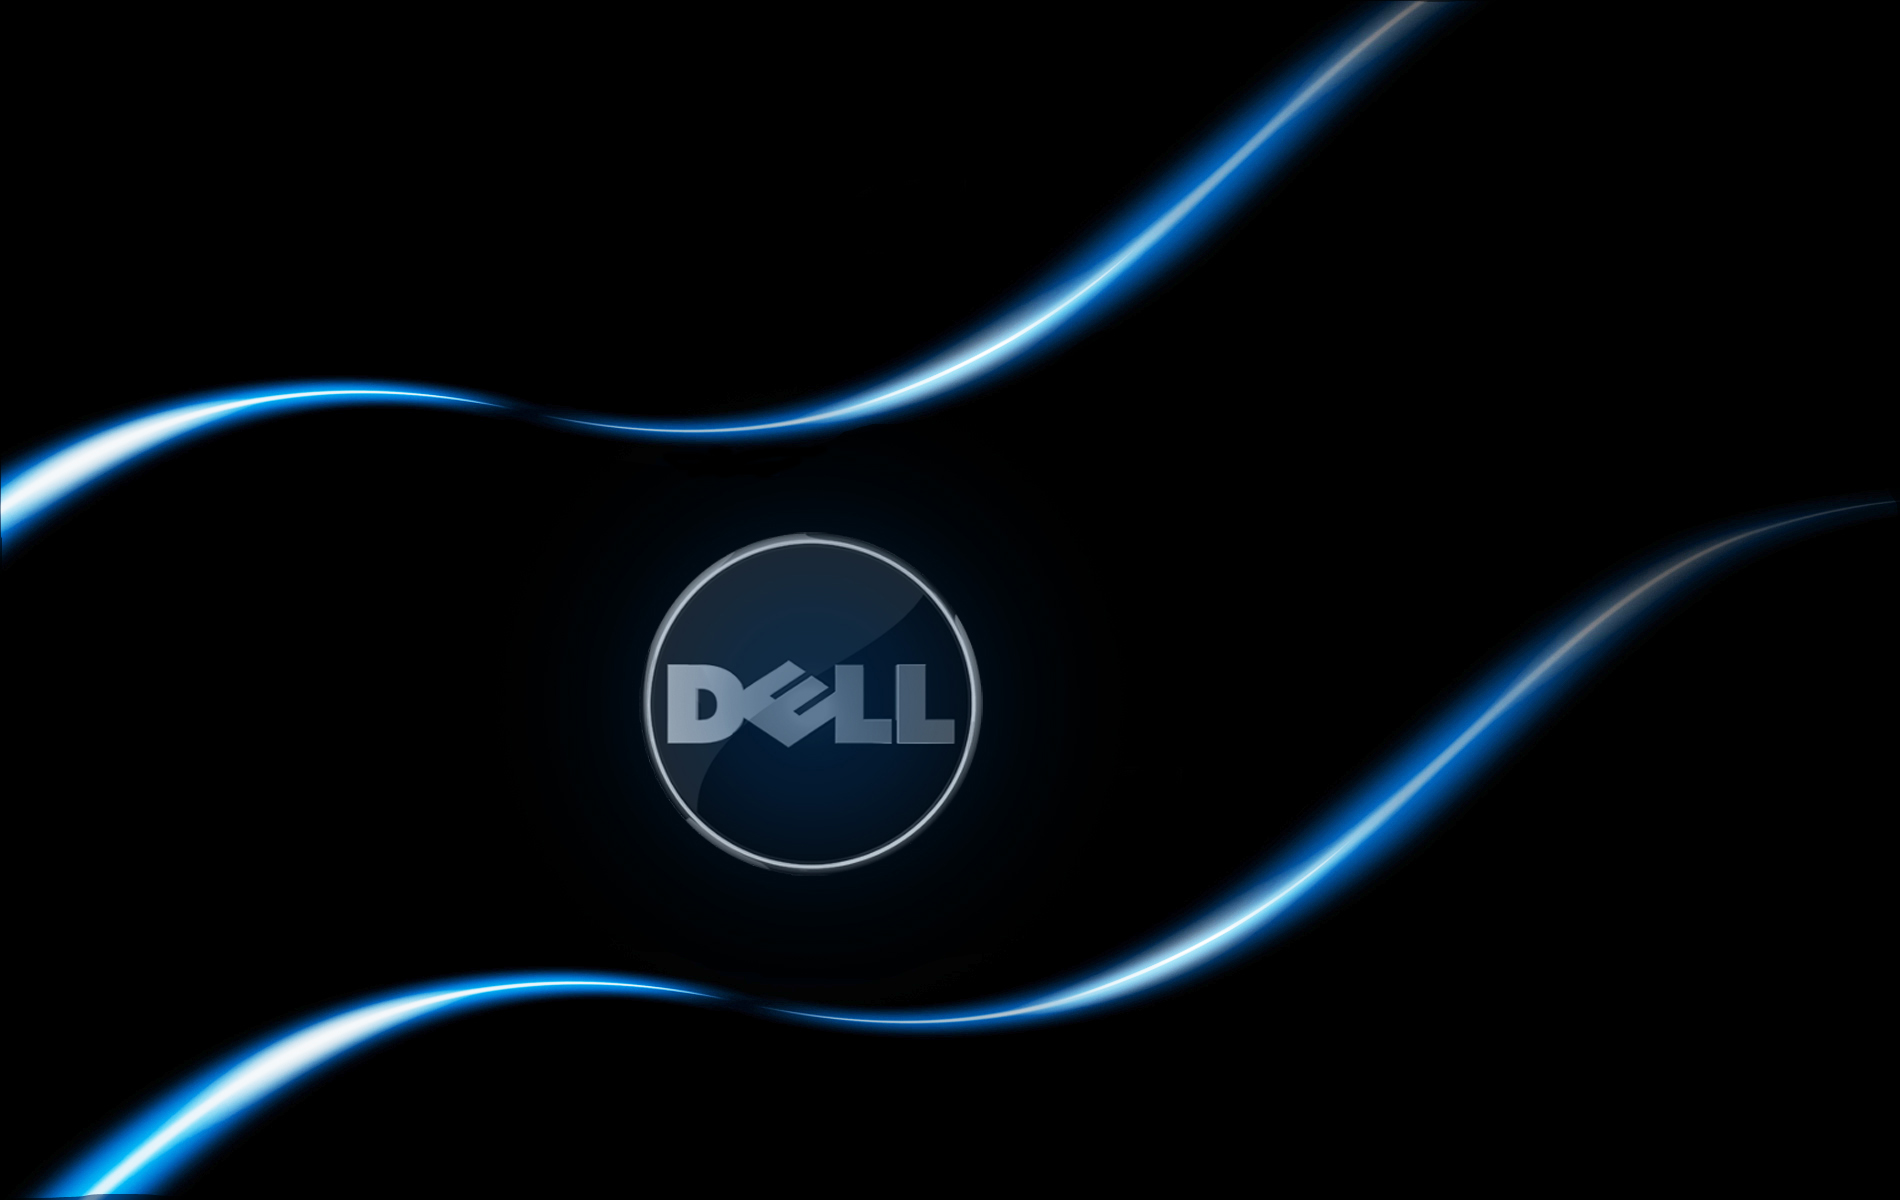 HD Dell Backgrounds & Dell Wallpaper For Windows